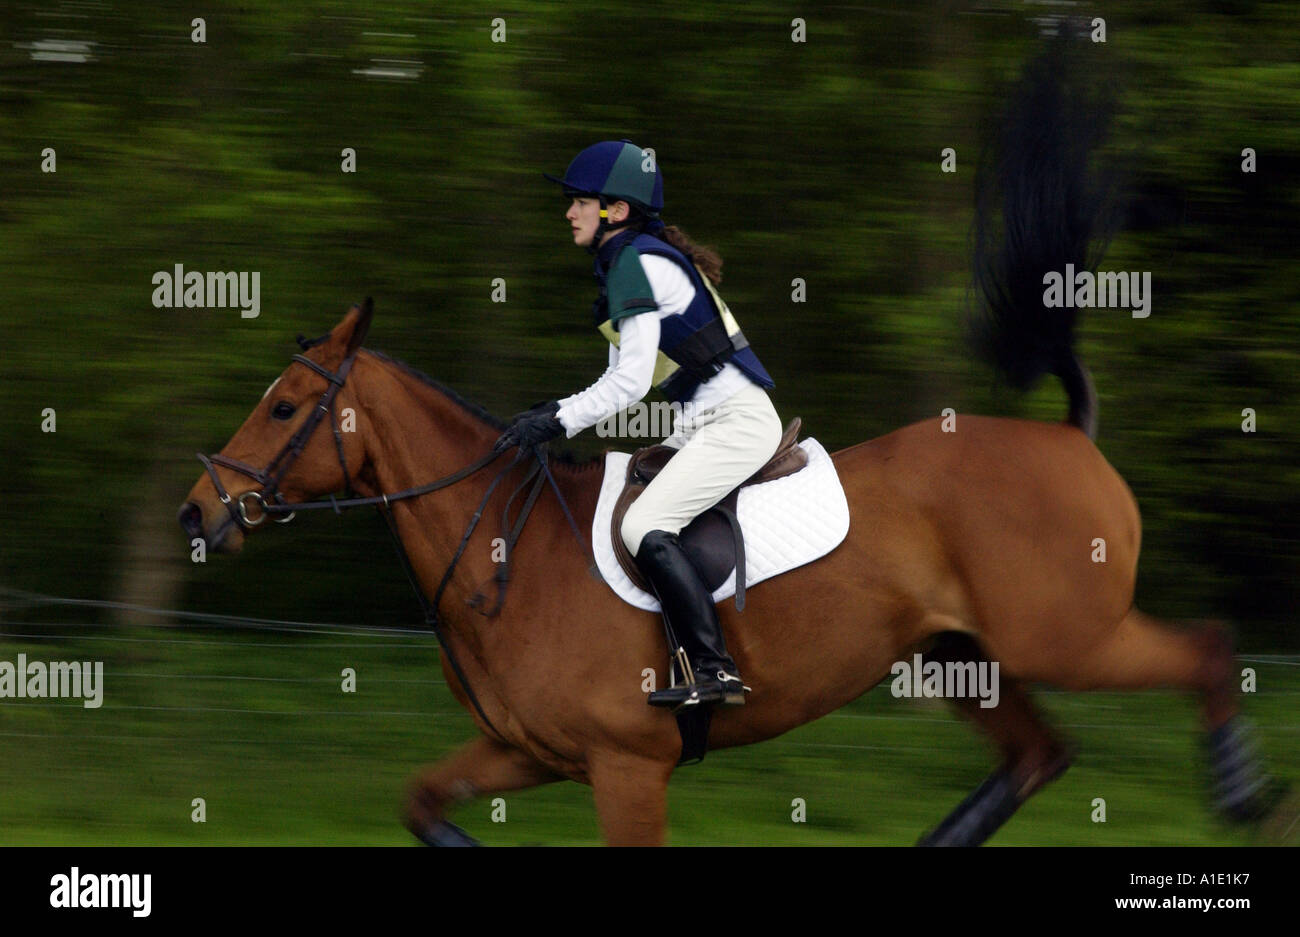 Cleveland Bay cross Thoroughbred bay horse bucks during cross country section at eventing competition United Kingdom - Stock Image